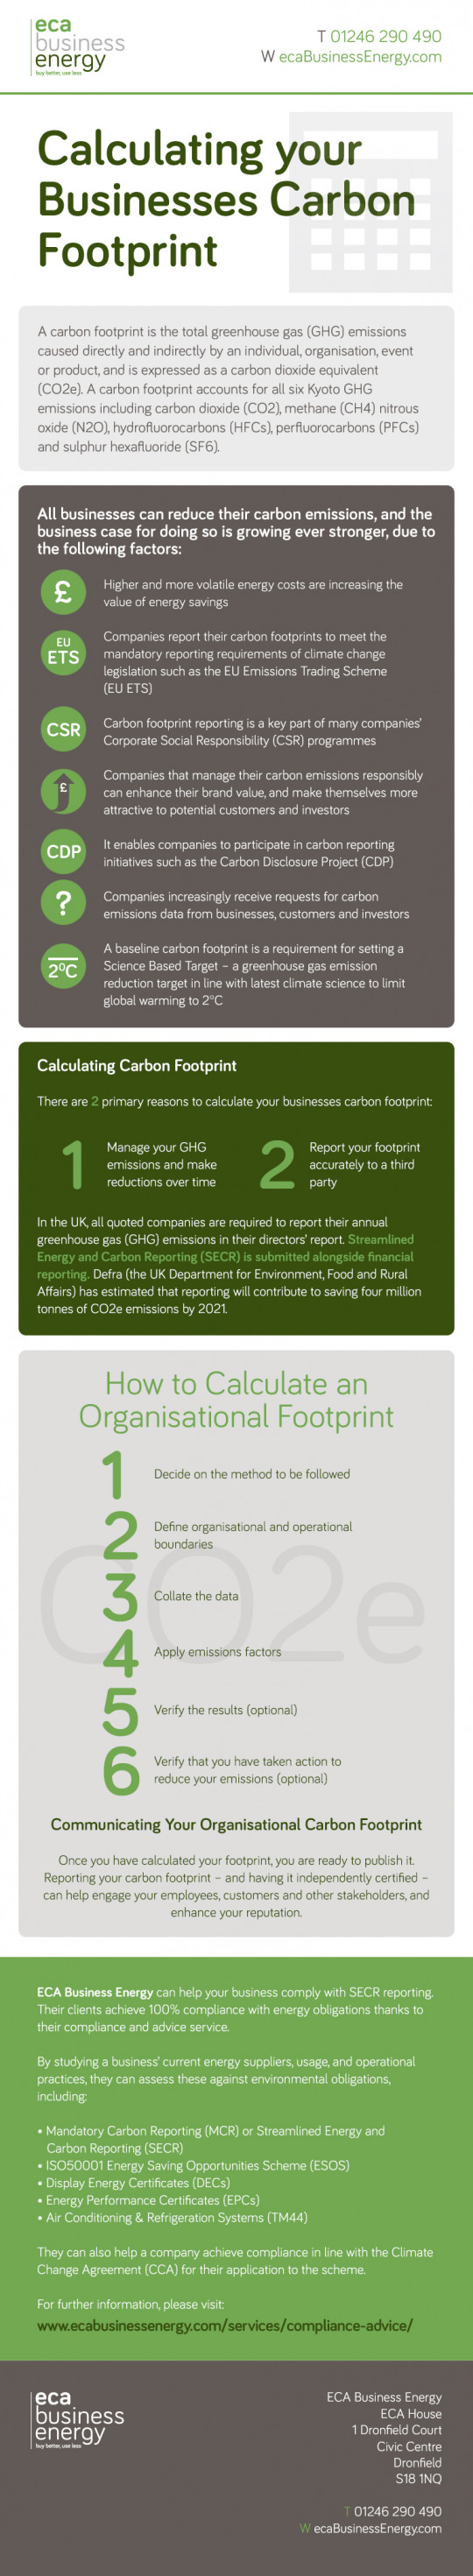 Calculating Your Businesses Carbon Footprint